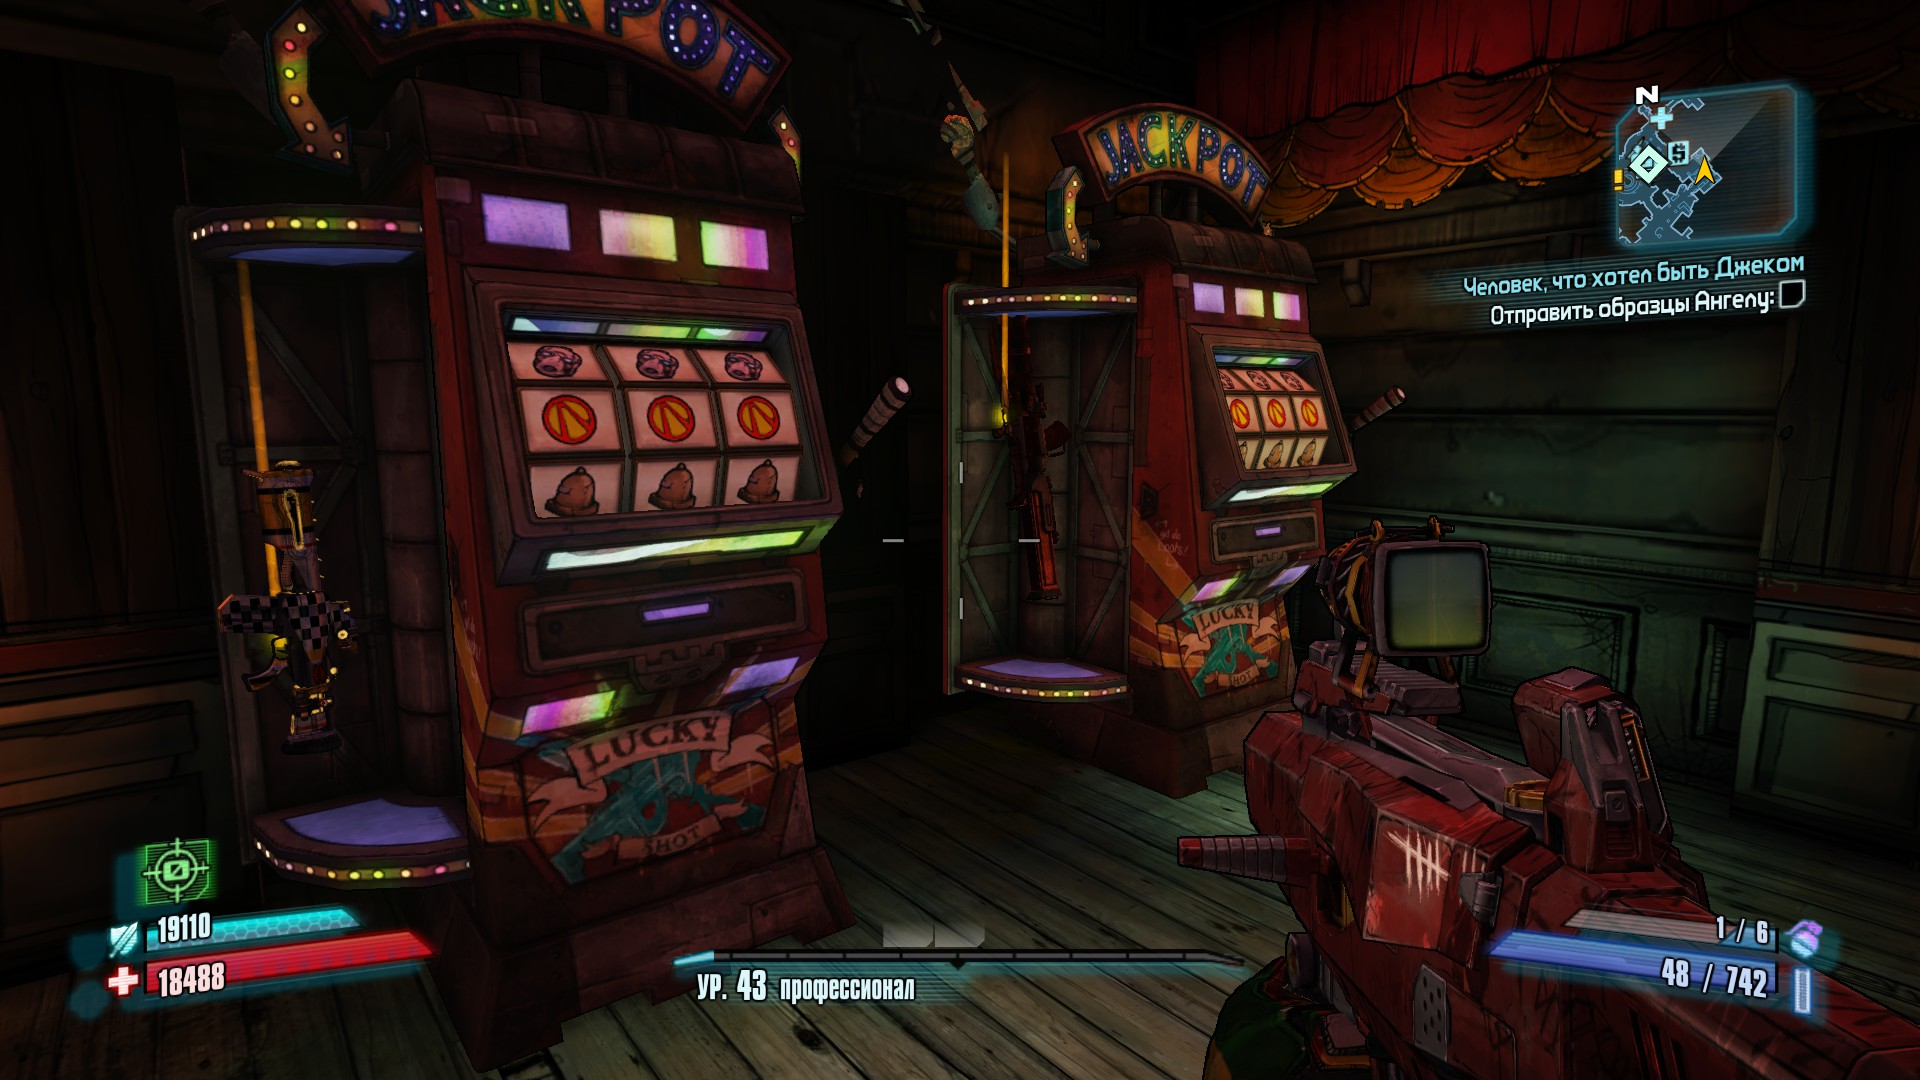 borderlands 2 slot machine hack